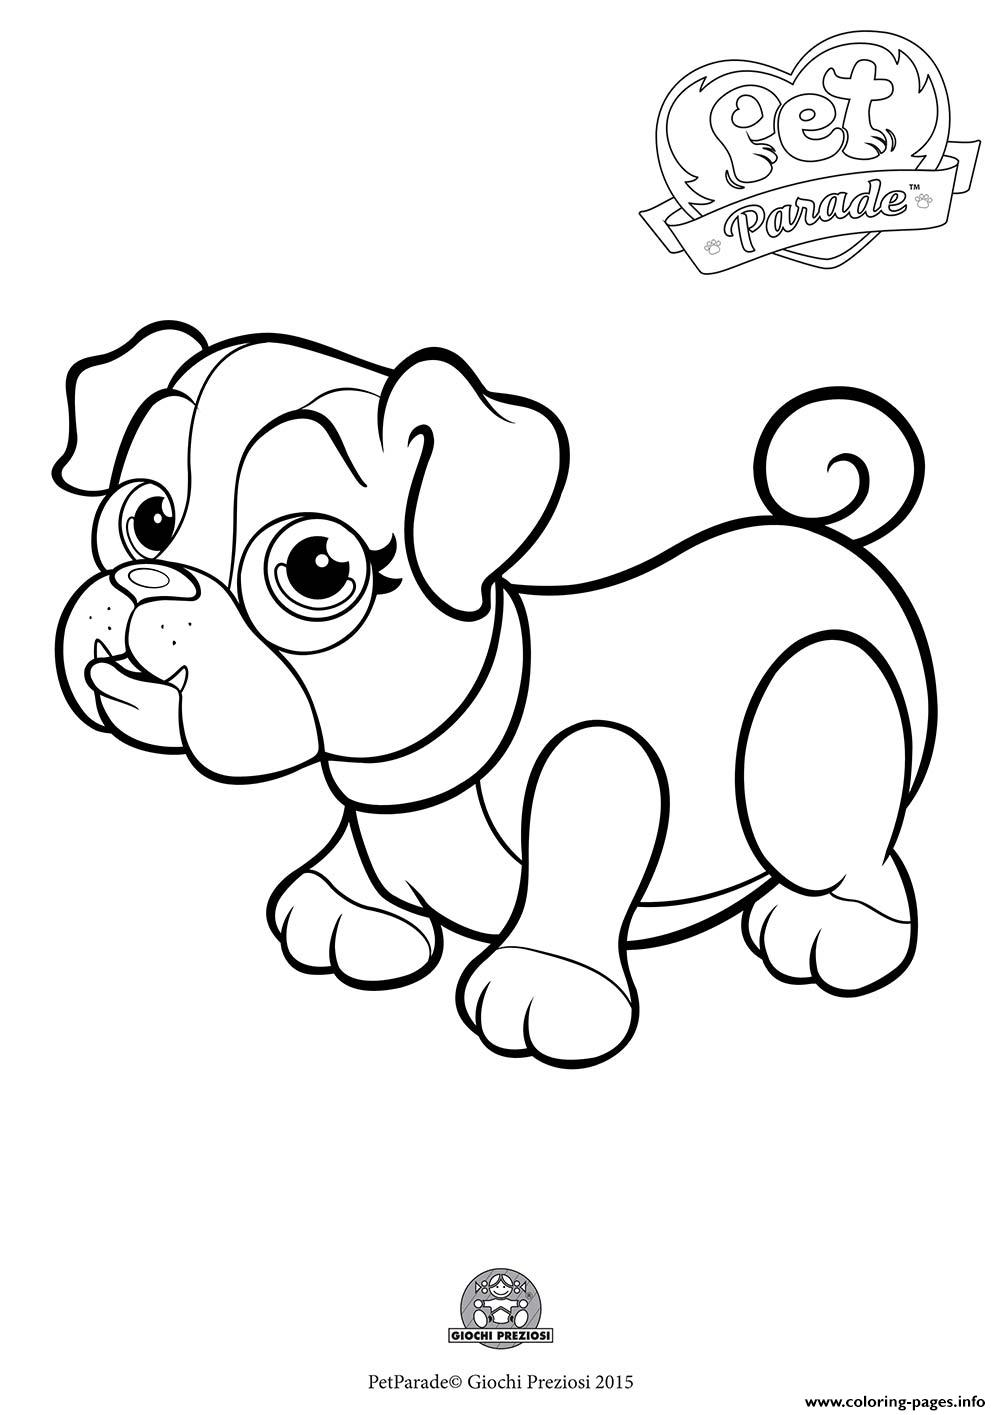 Parade coloring pages to print for adults - Pet Parade Cute Dog Bouledogue 1 Coloring Pages Print Download 313 Prints